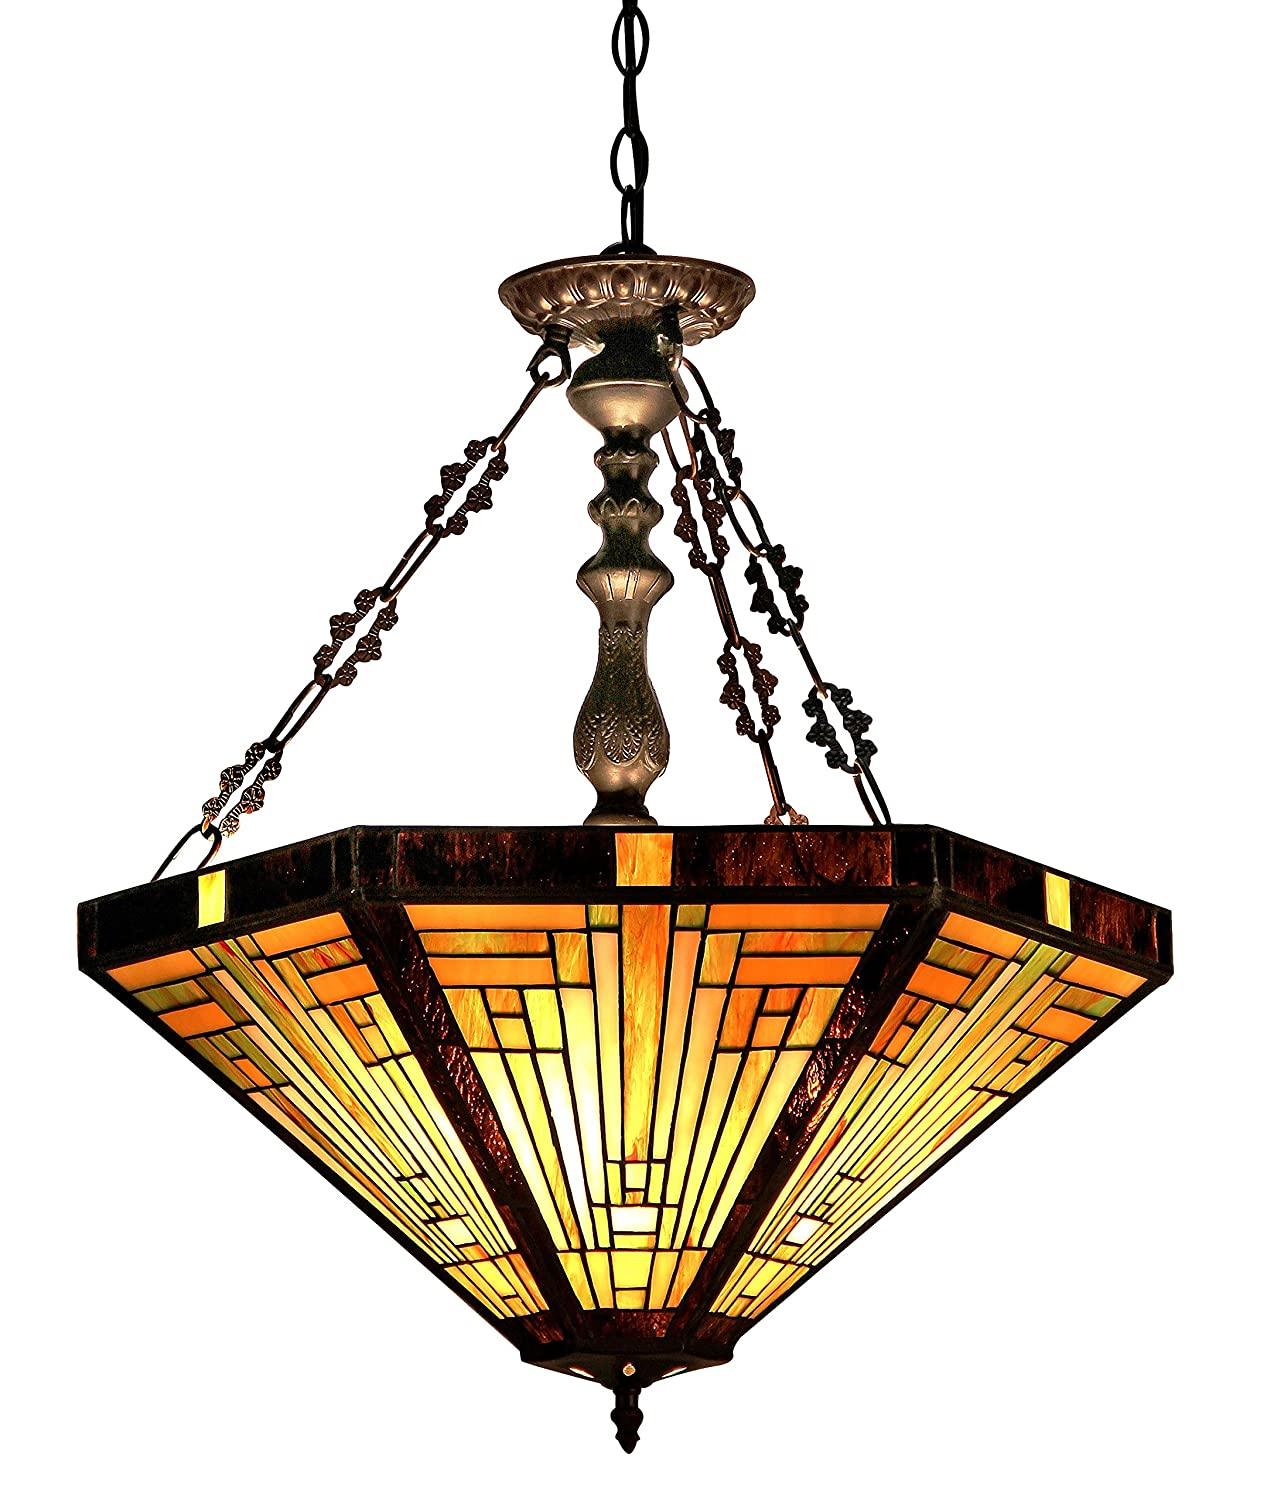 "Chloe Lighting CH33359MR22-UH3 Innes Tiffany-Style Mission 3-Light Inverted Ceiling Pendant with Fixture with Shade, 24.3 x 21.7 x 21.7"", Bronze"